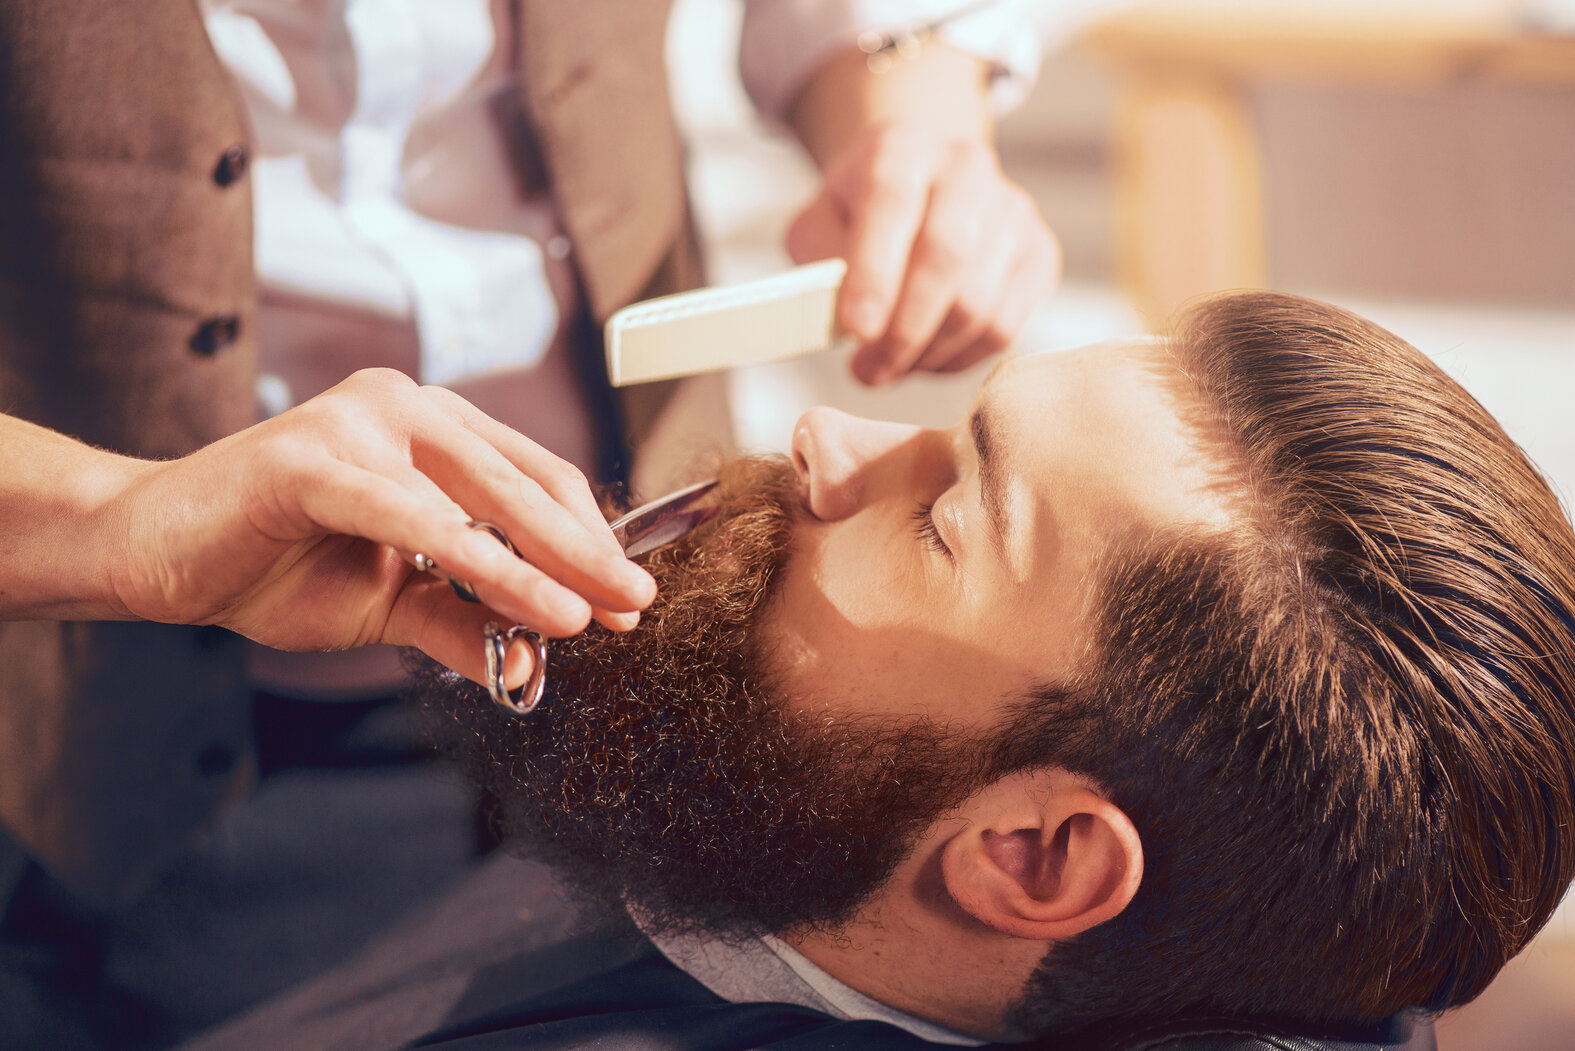 6 Great and Helpful Tips for Styling Your Beard